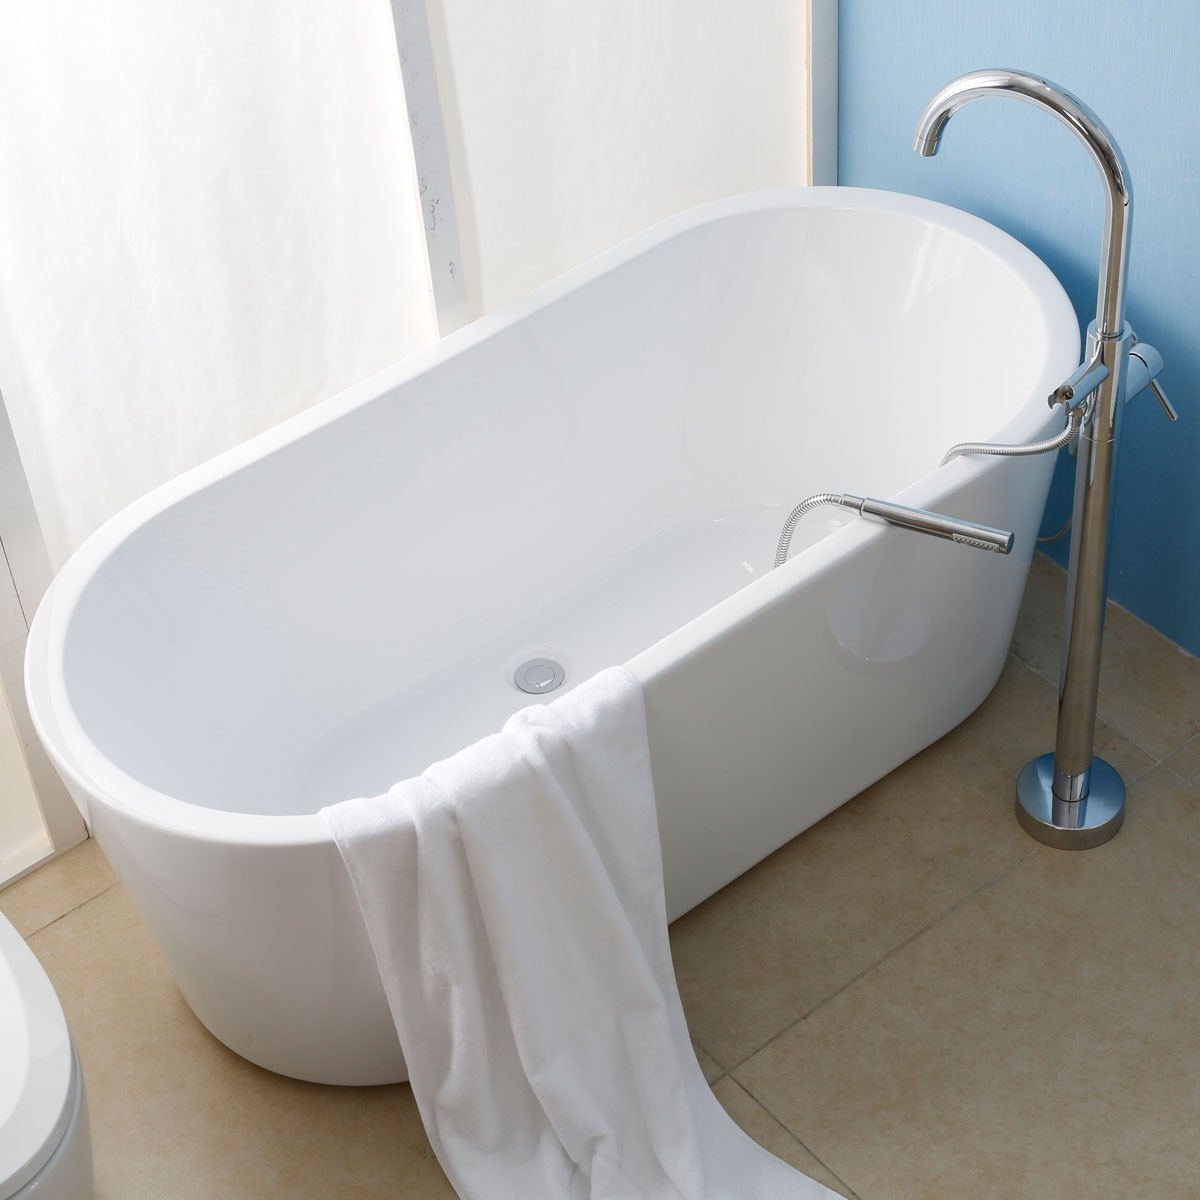 65 In White Acrylic Seamless Freestanding Bathtub (DK-AT-1681W)